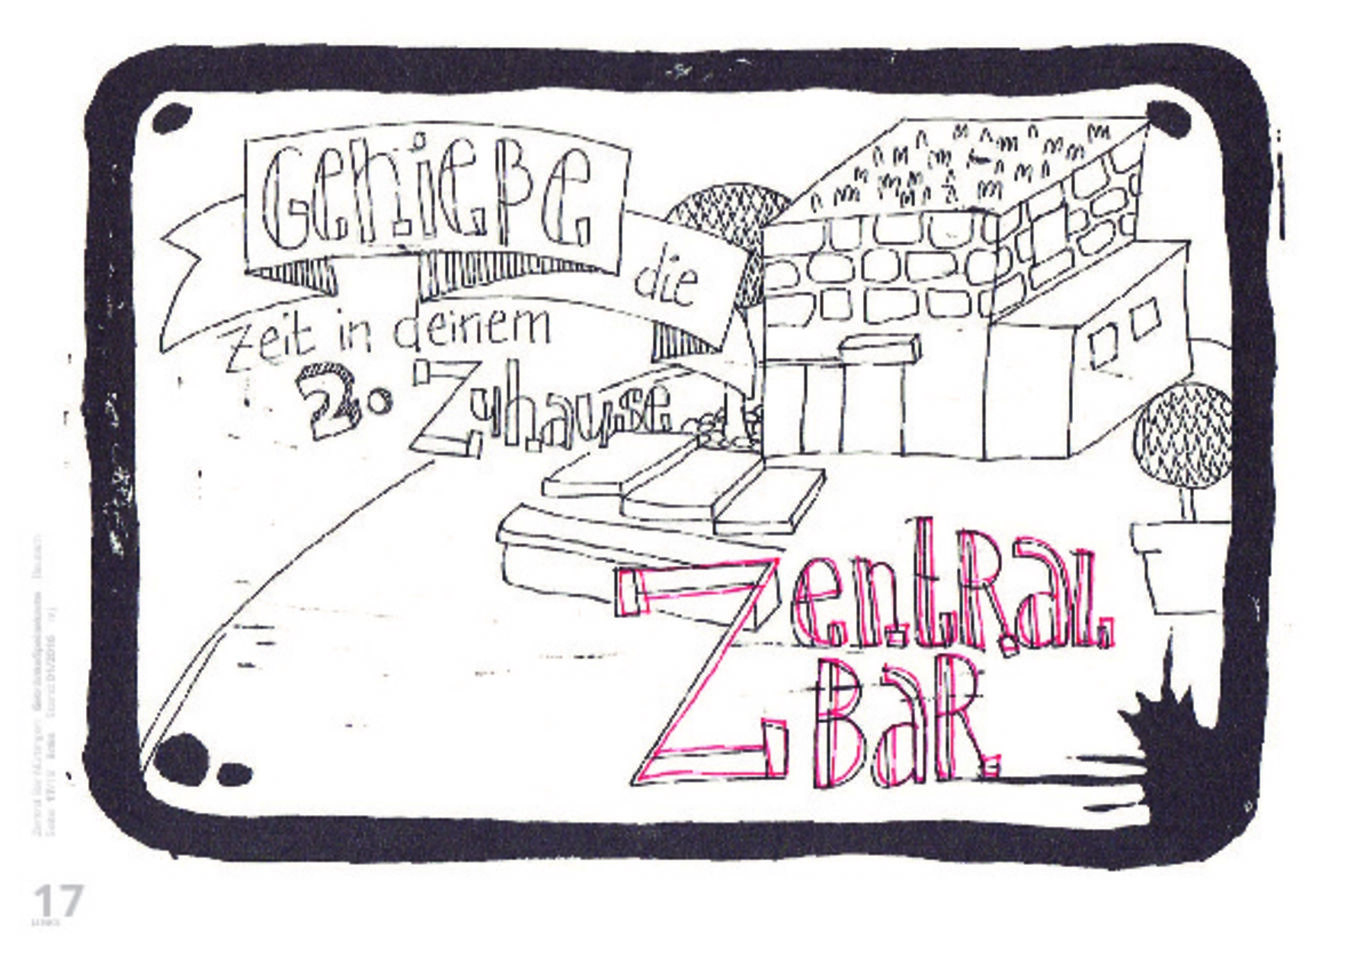 A photo of Zentral Bar